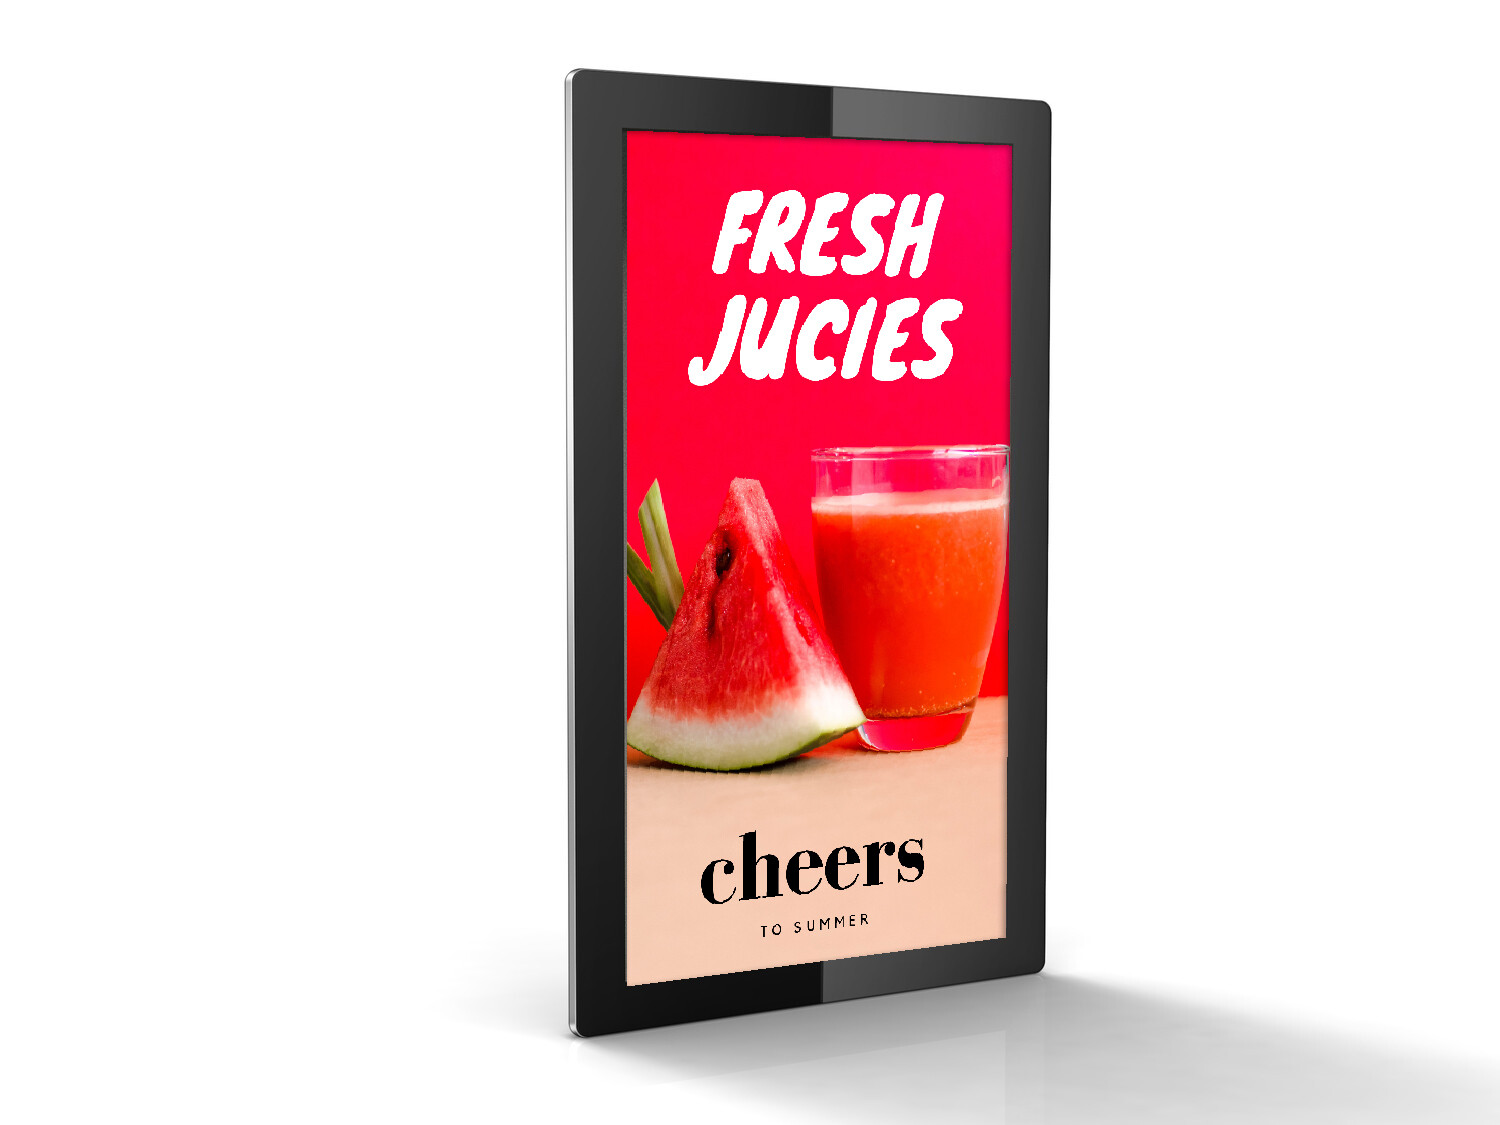 Digital Advertising Display | Large Screen Tablet